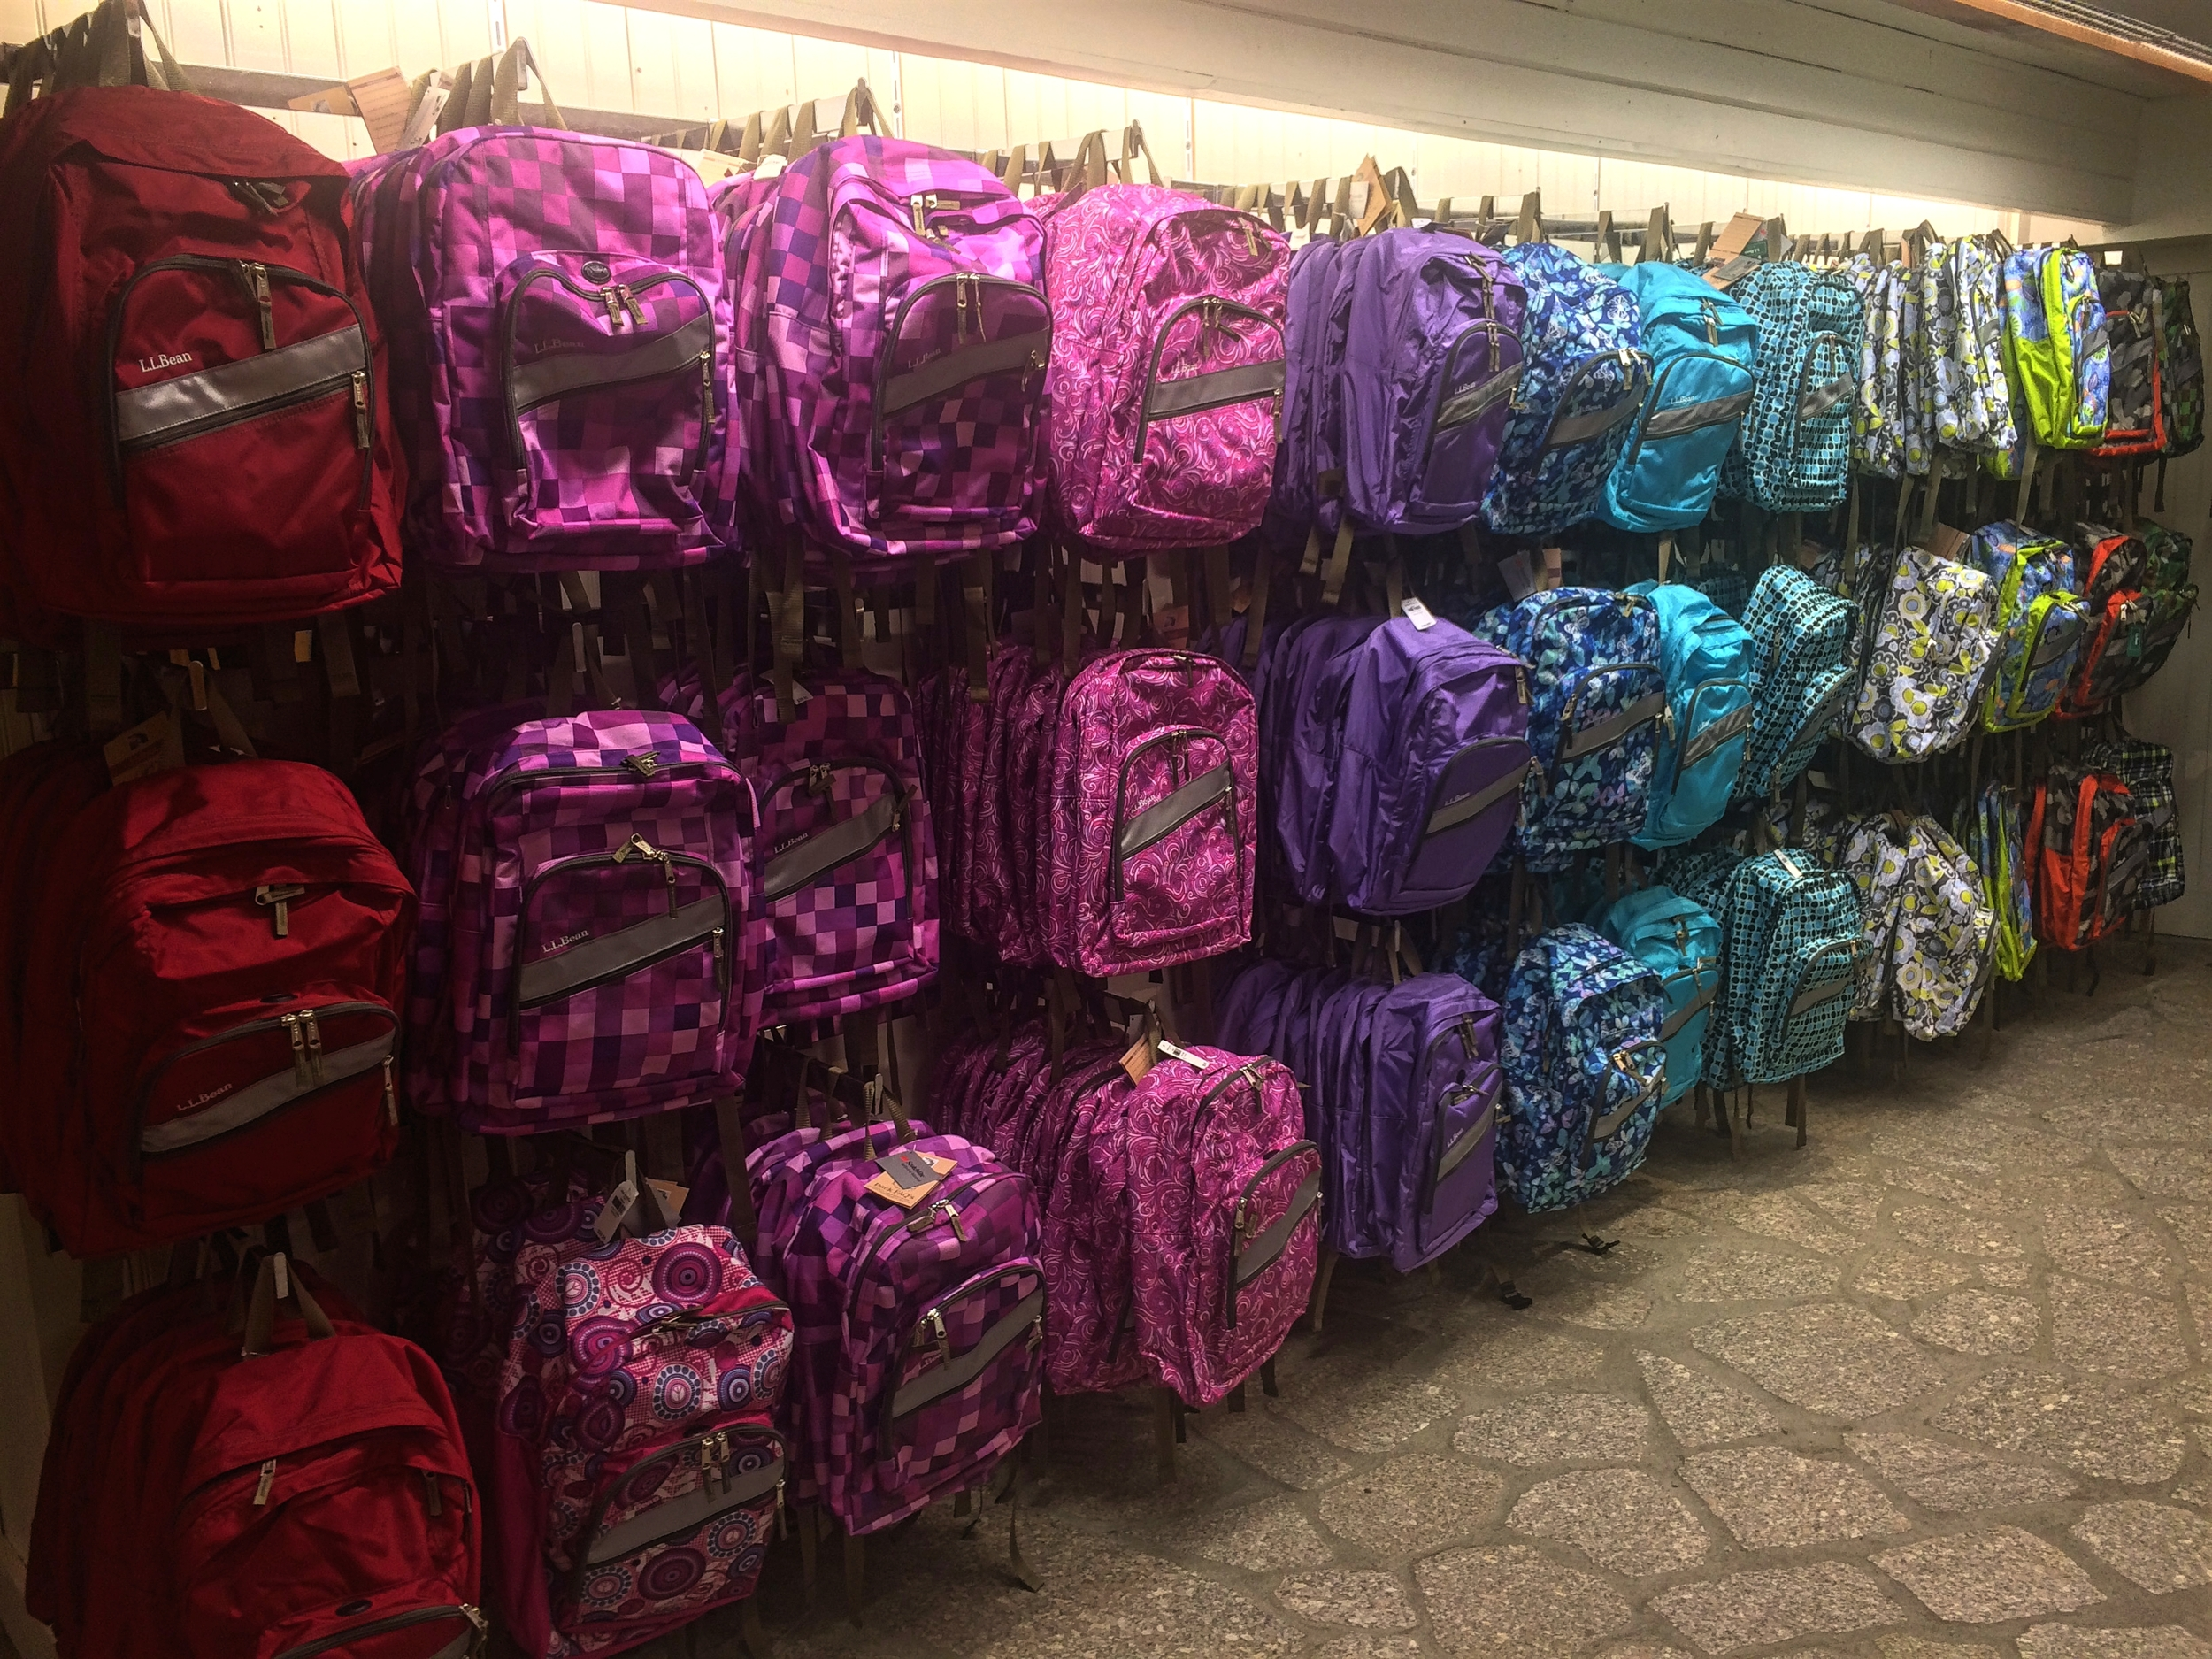 Jeremy and I both grew up with these classic L.L. Bean backpacks in high school. Mine was the jumbo one with two large zippered compartments and I had let all my friends sign their names on it with whiteout pens. So cool.